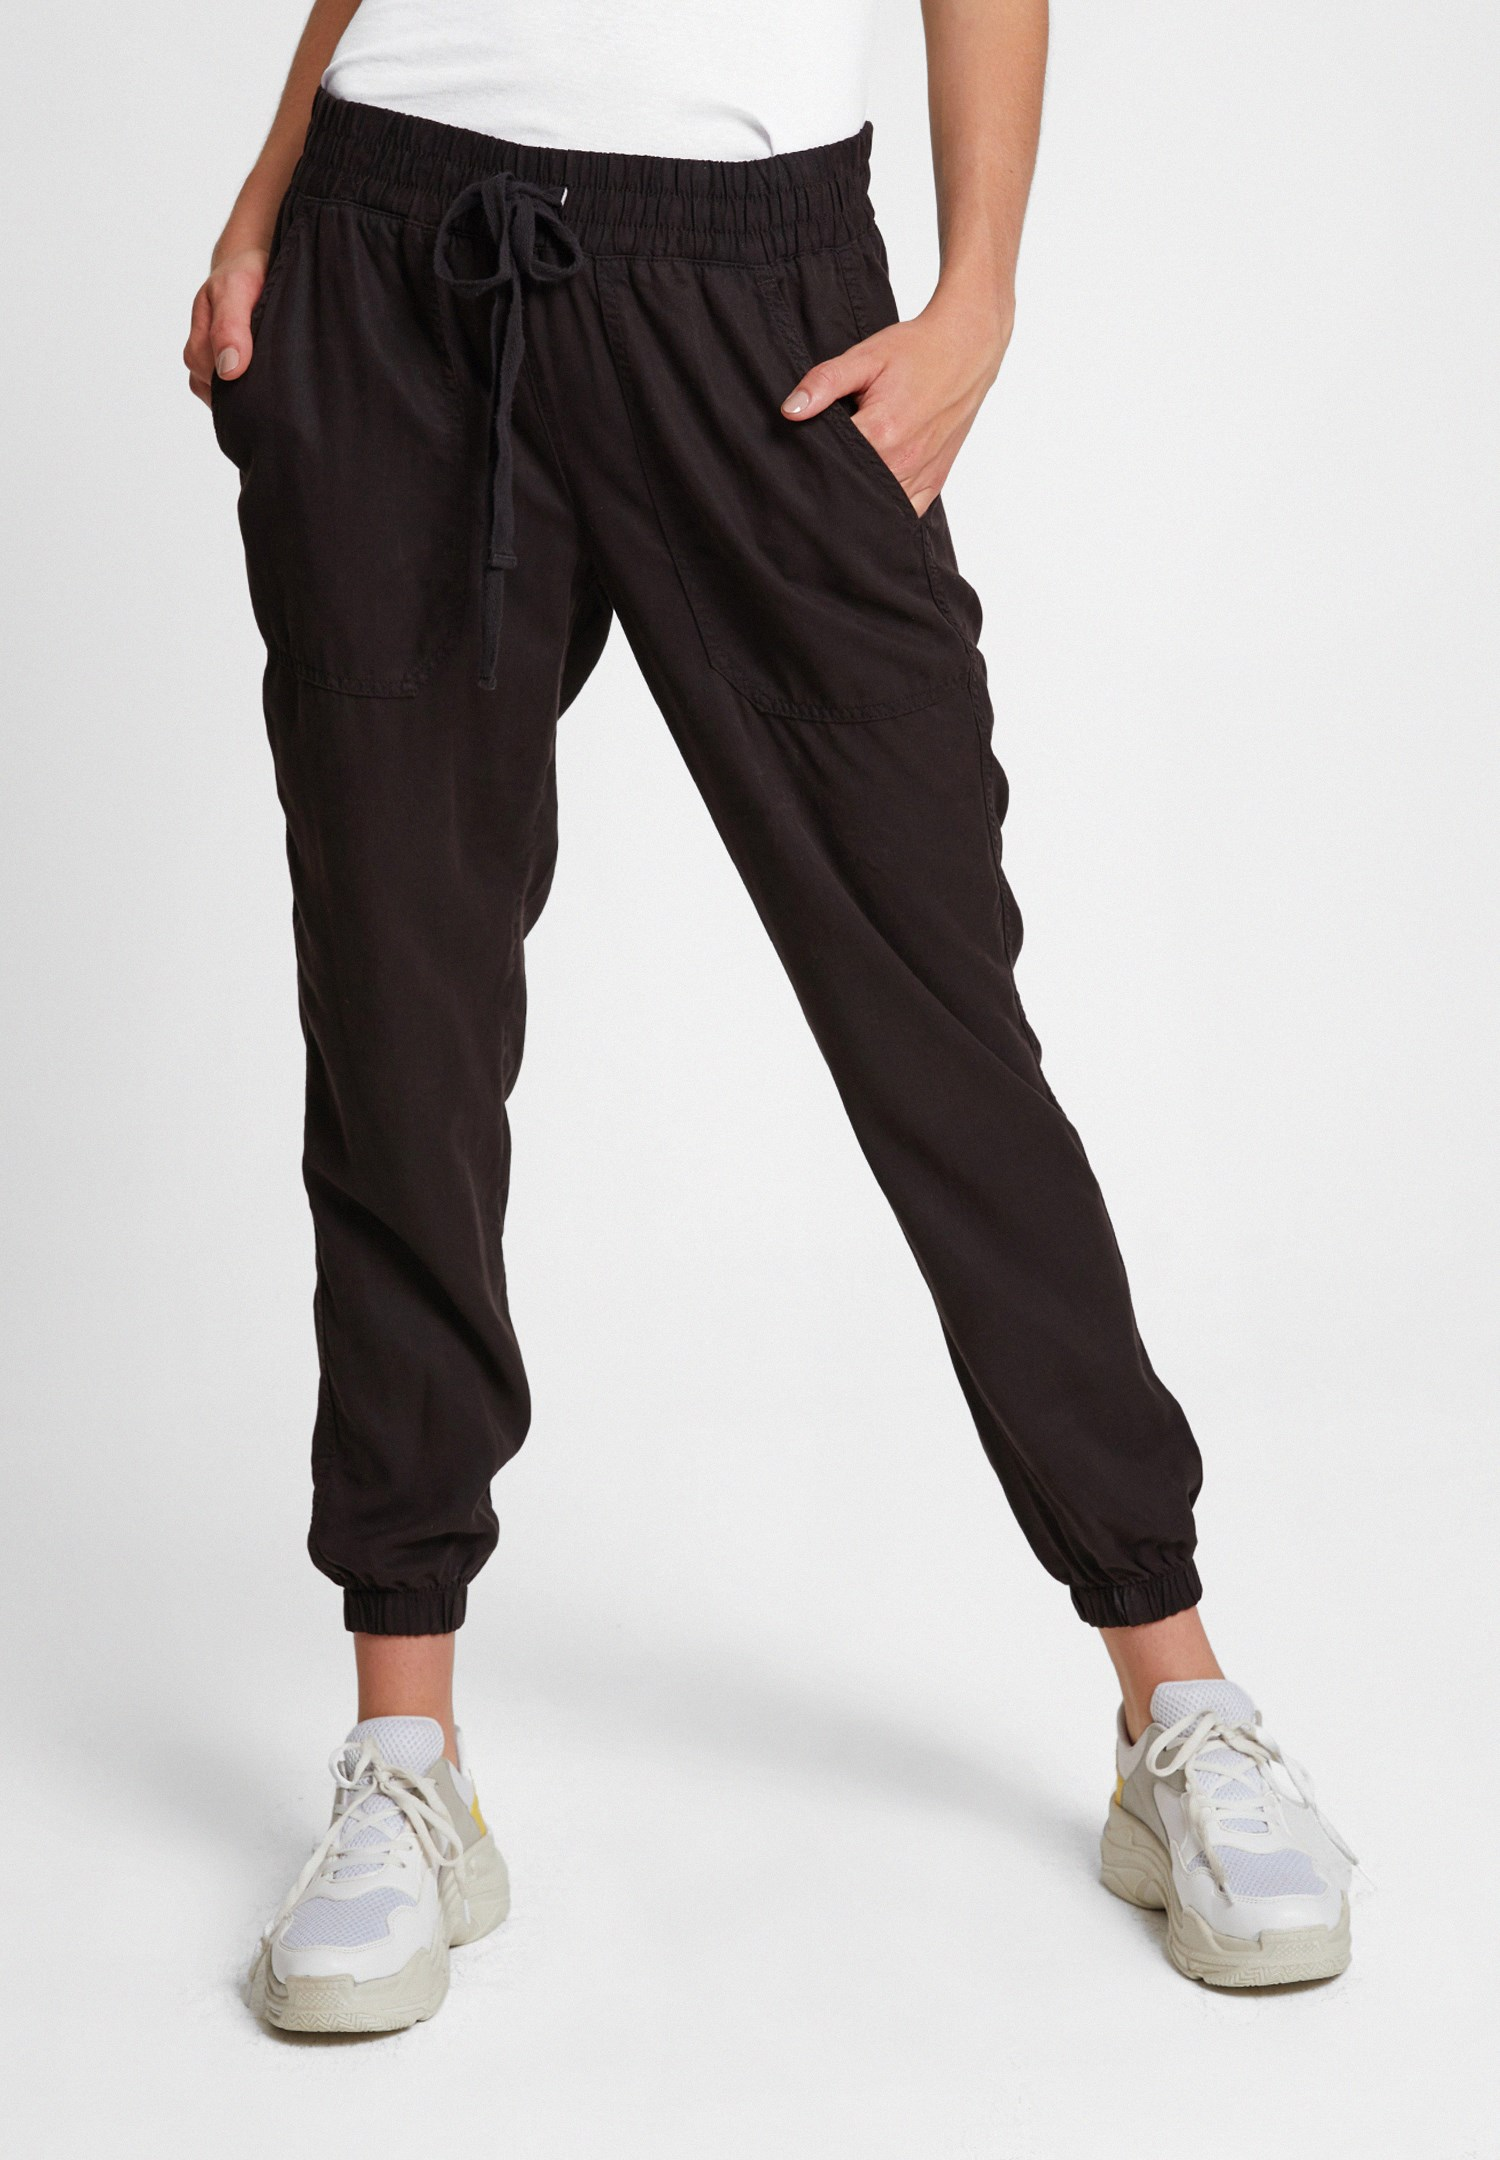 Women Black Jogger Pants with Elasticated Waist